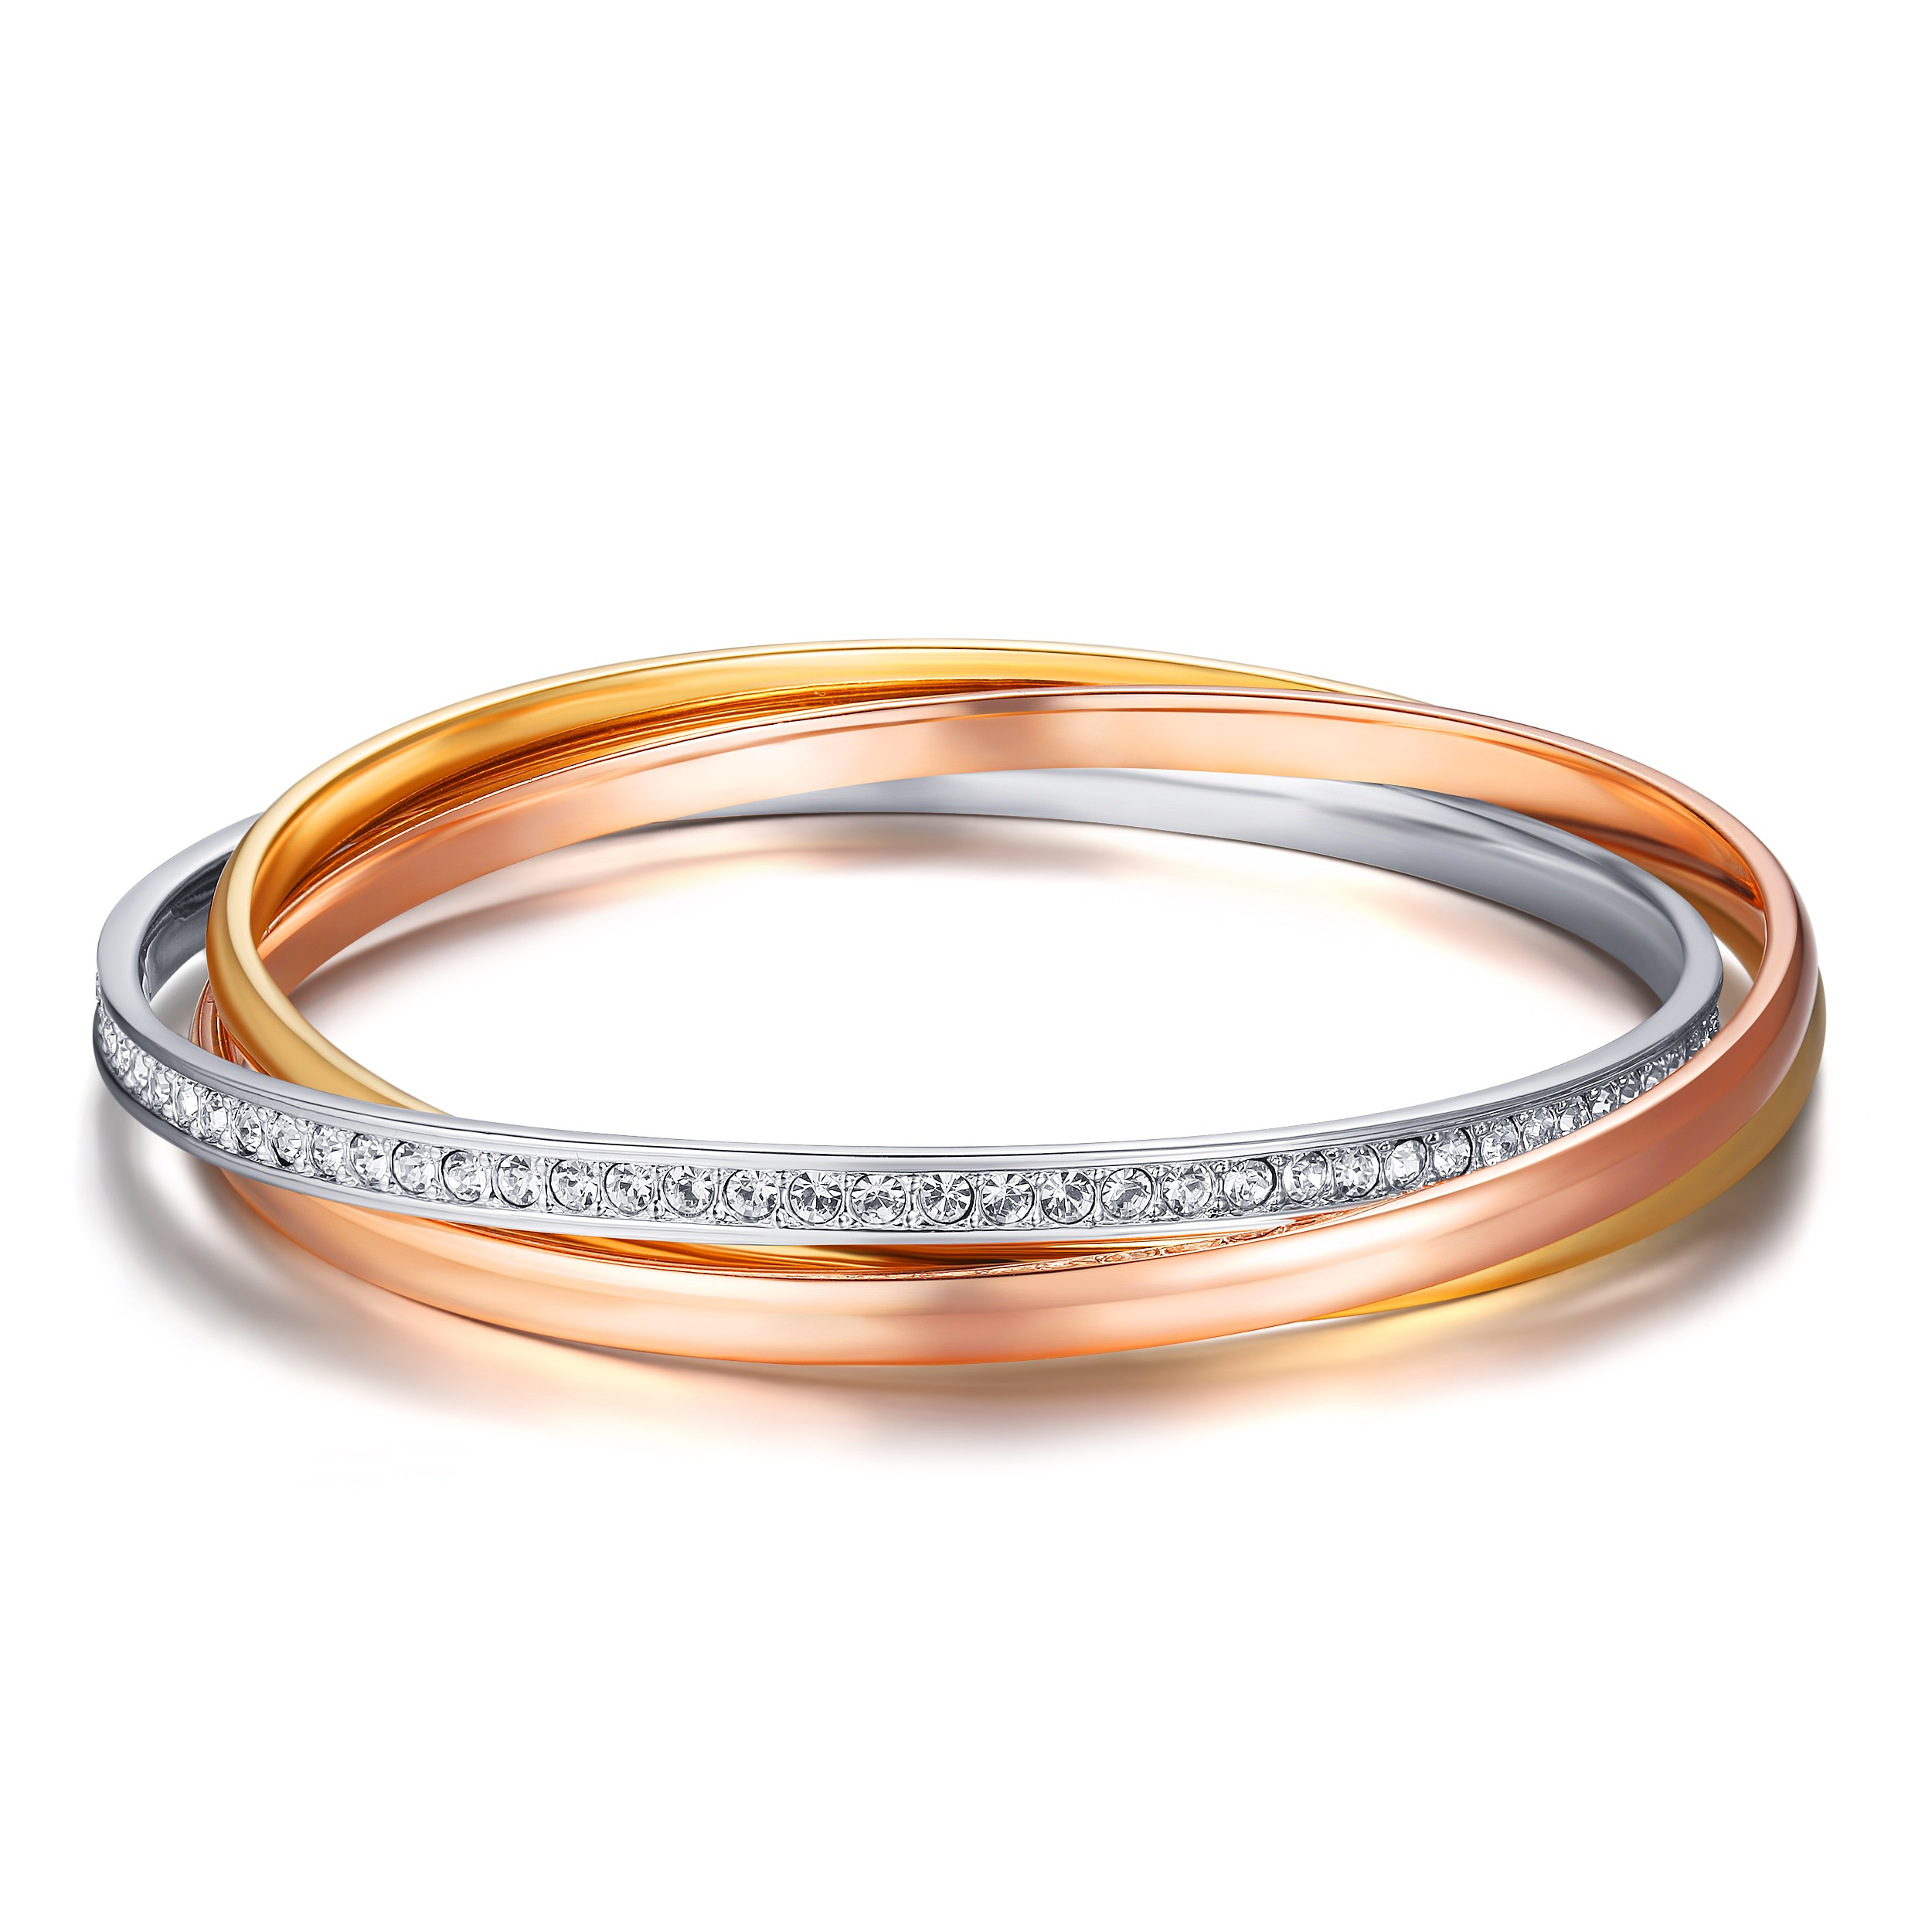 bar main executive product rose jewelry ice women in bangles home bracelets bangle menu bracelet shop accessory s gold diamond womens and